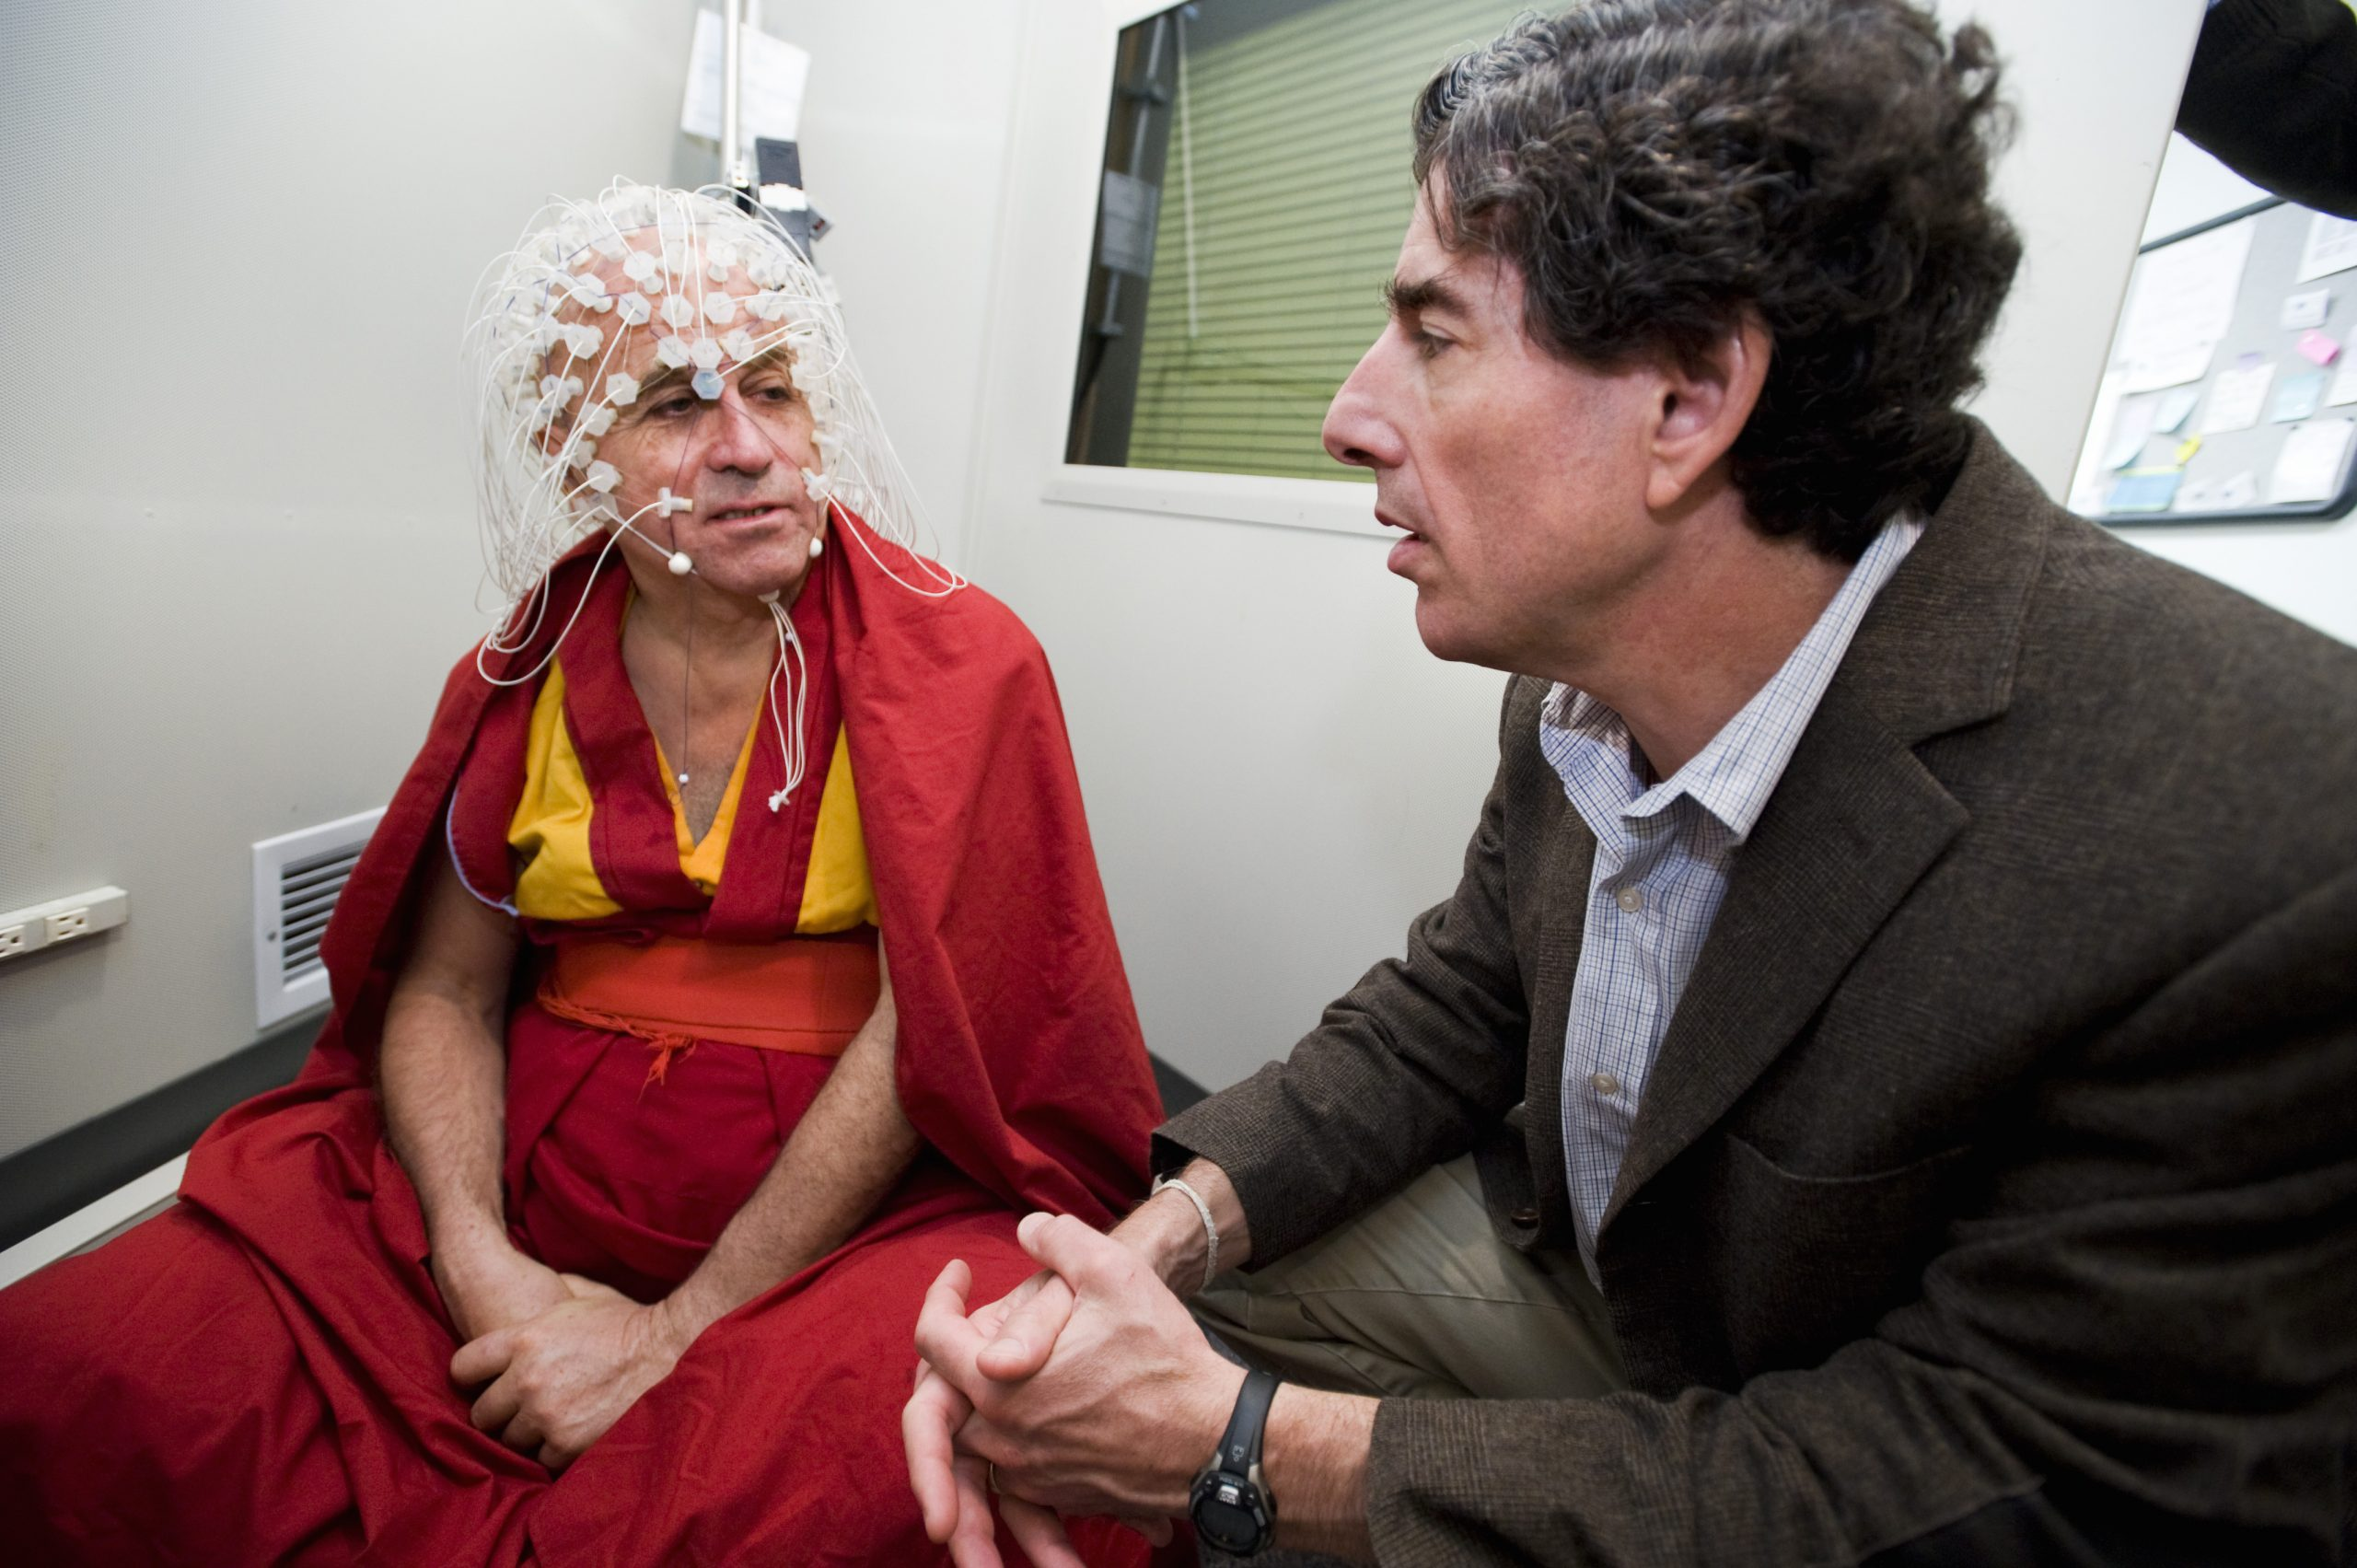 Meditation and science - buddhist monk eeg